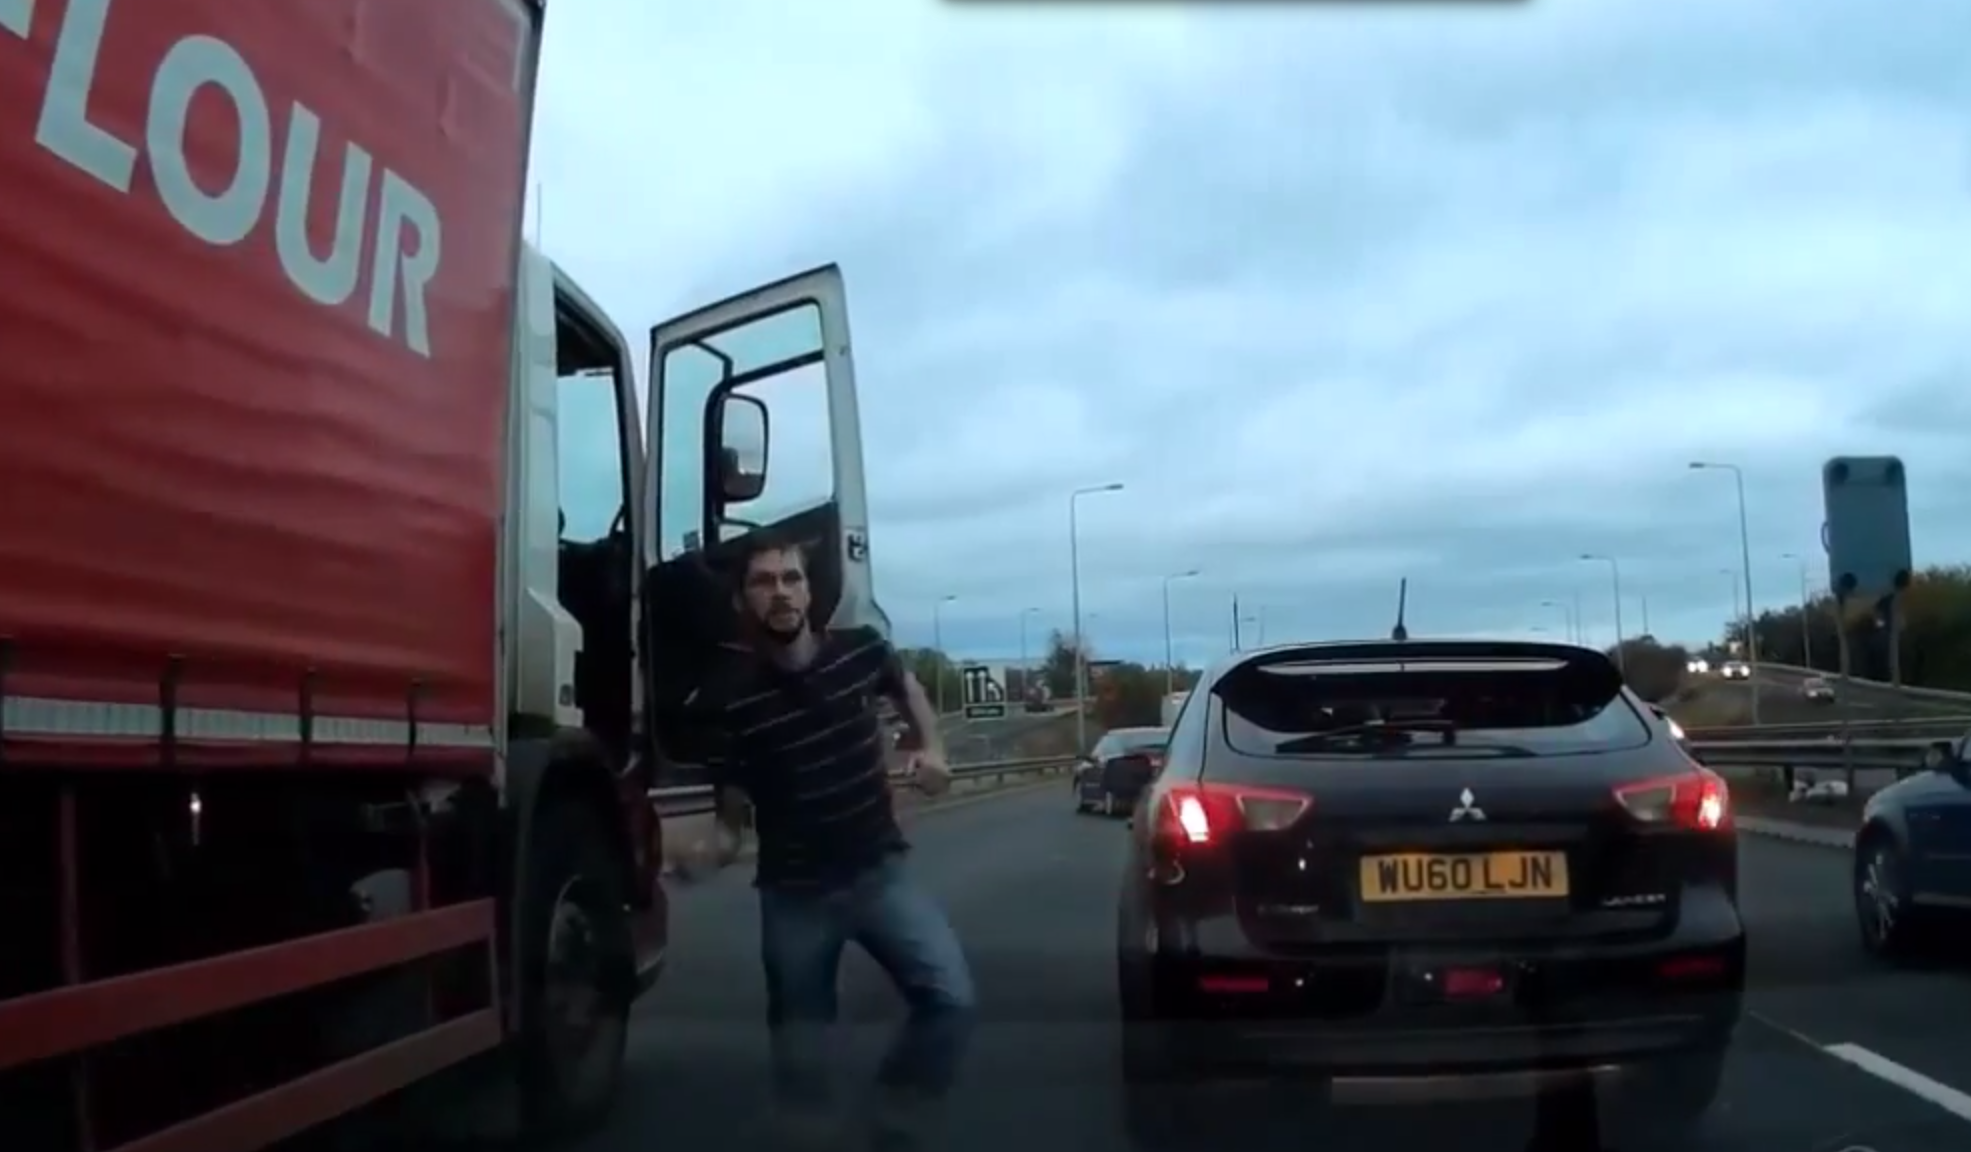 The incident on the Forth Road Bridge